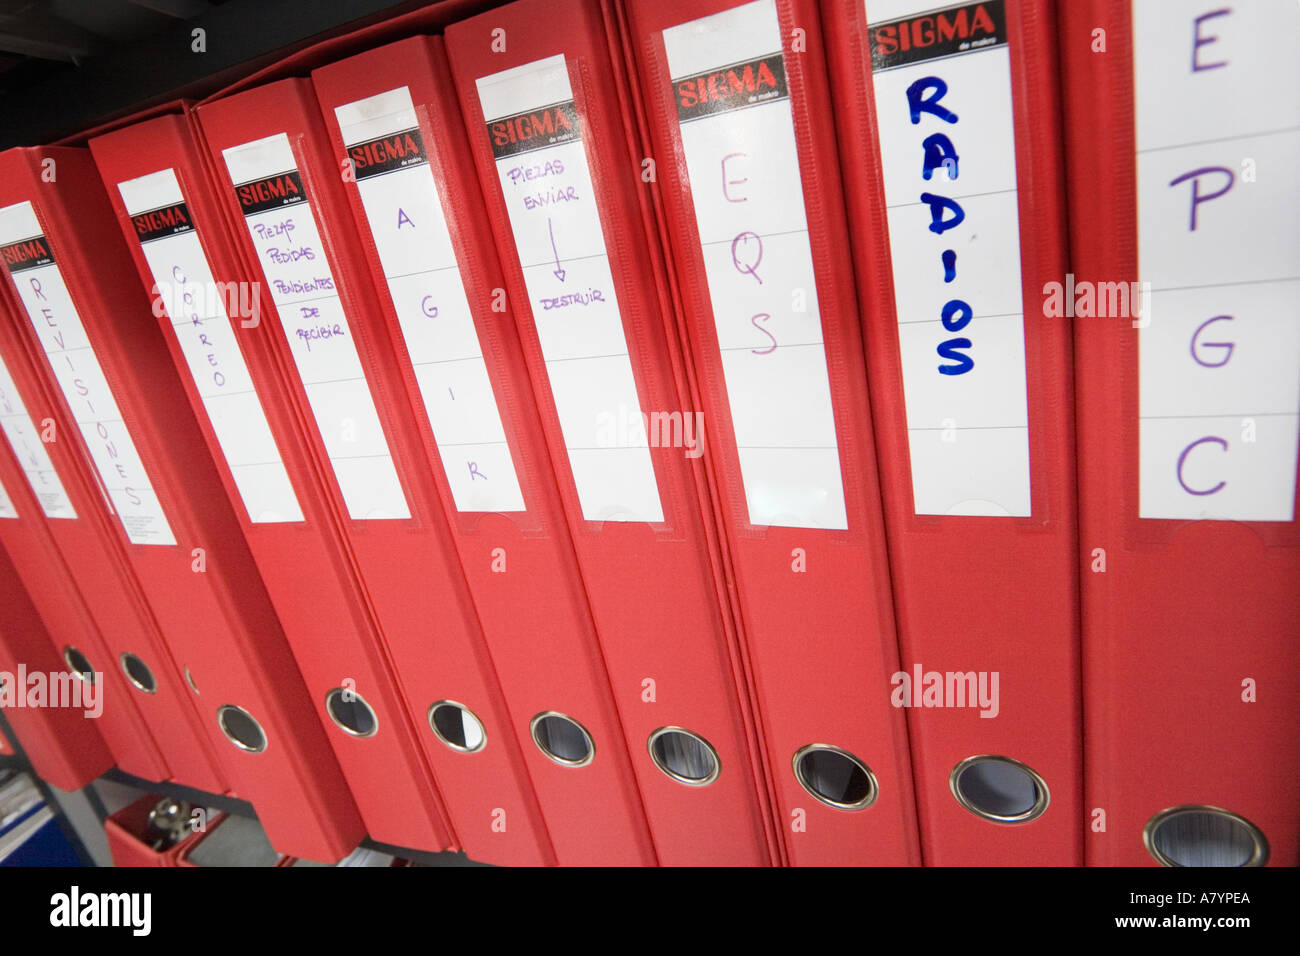 Red files identified in Spanish language in a row on an office shelf - Stock Image